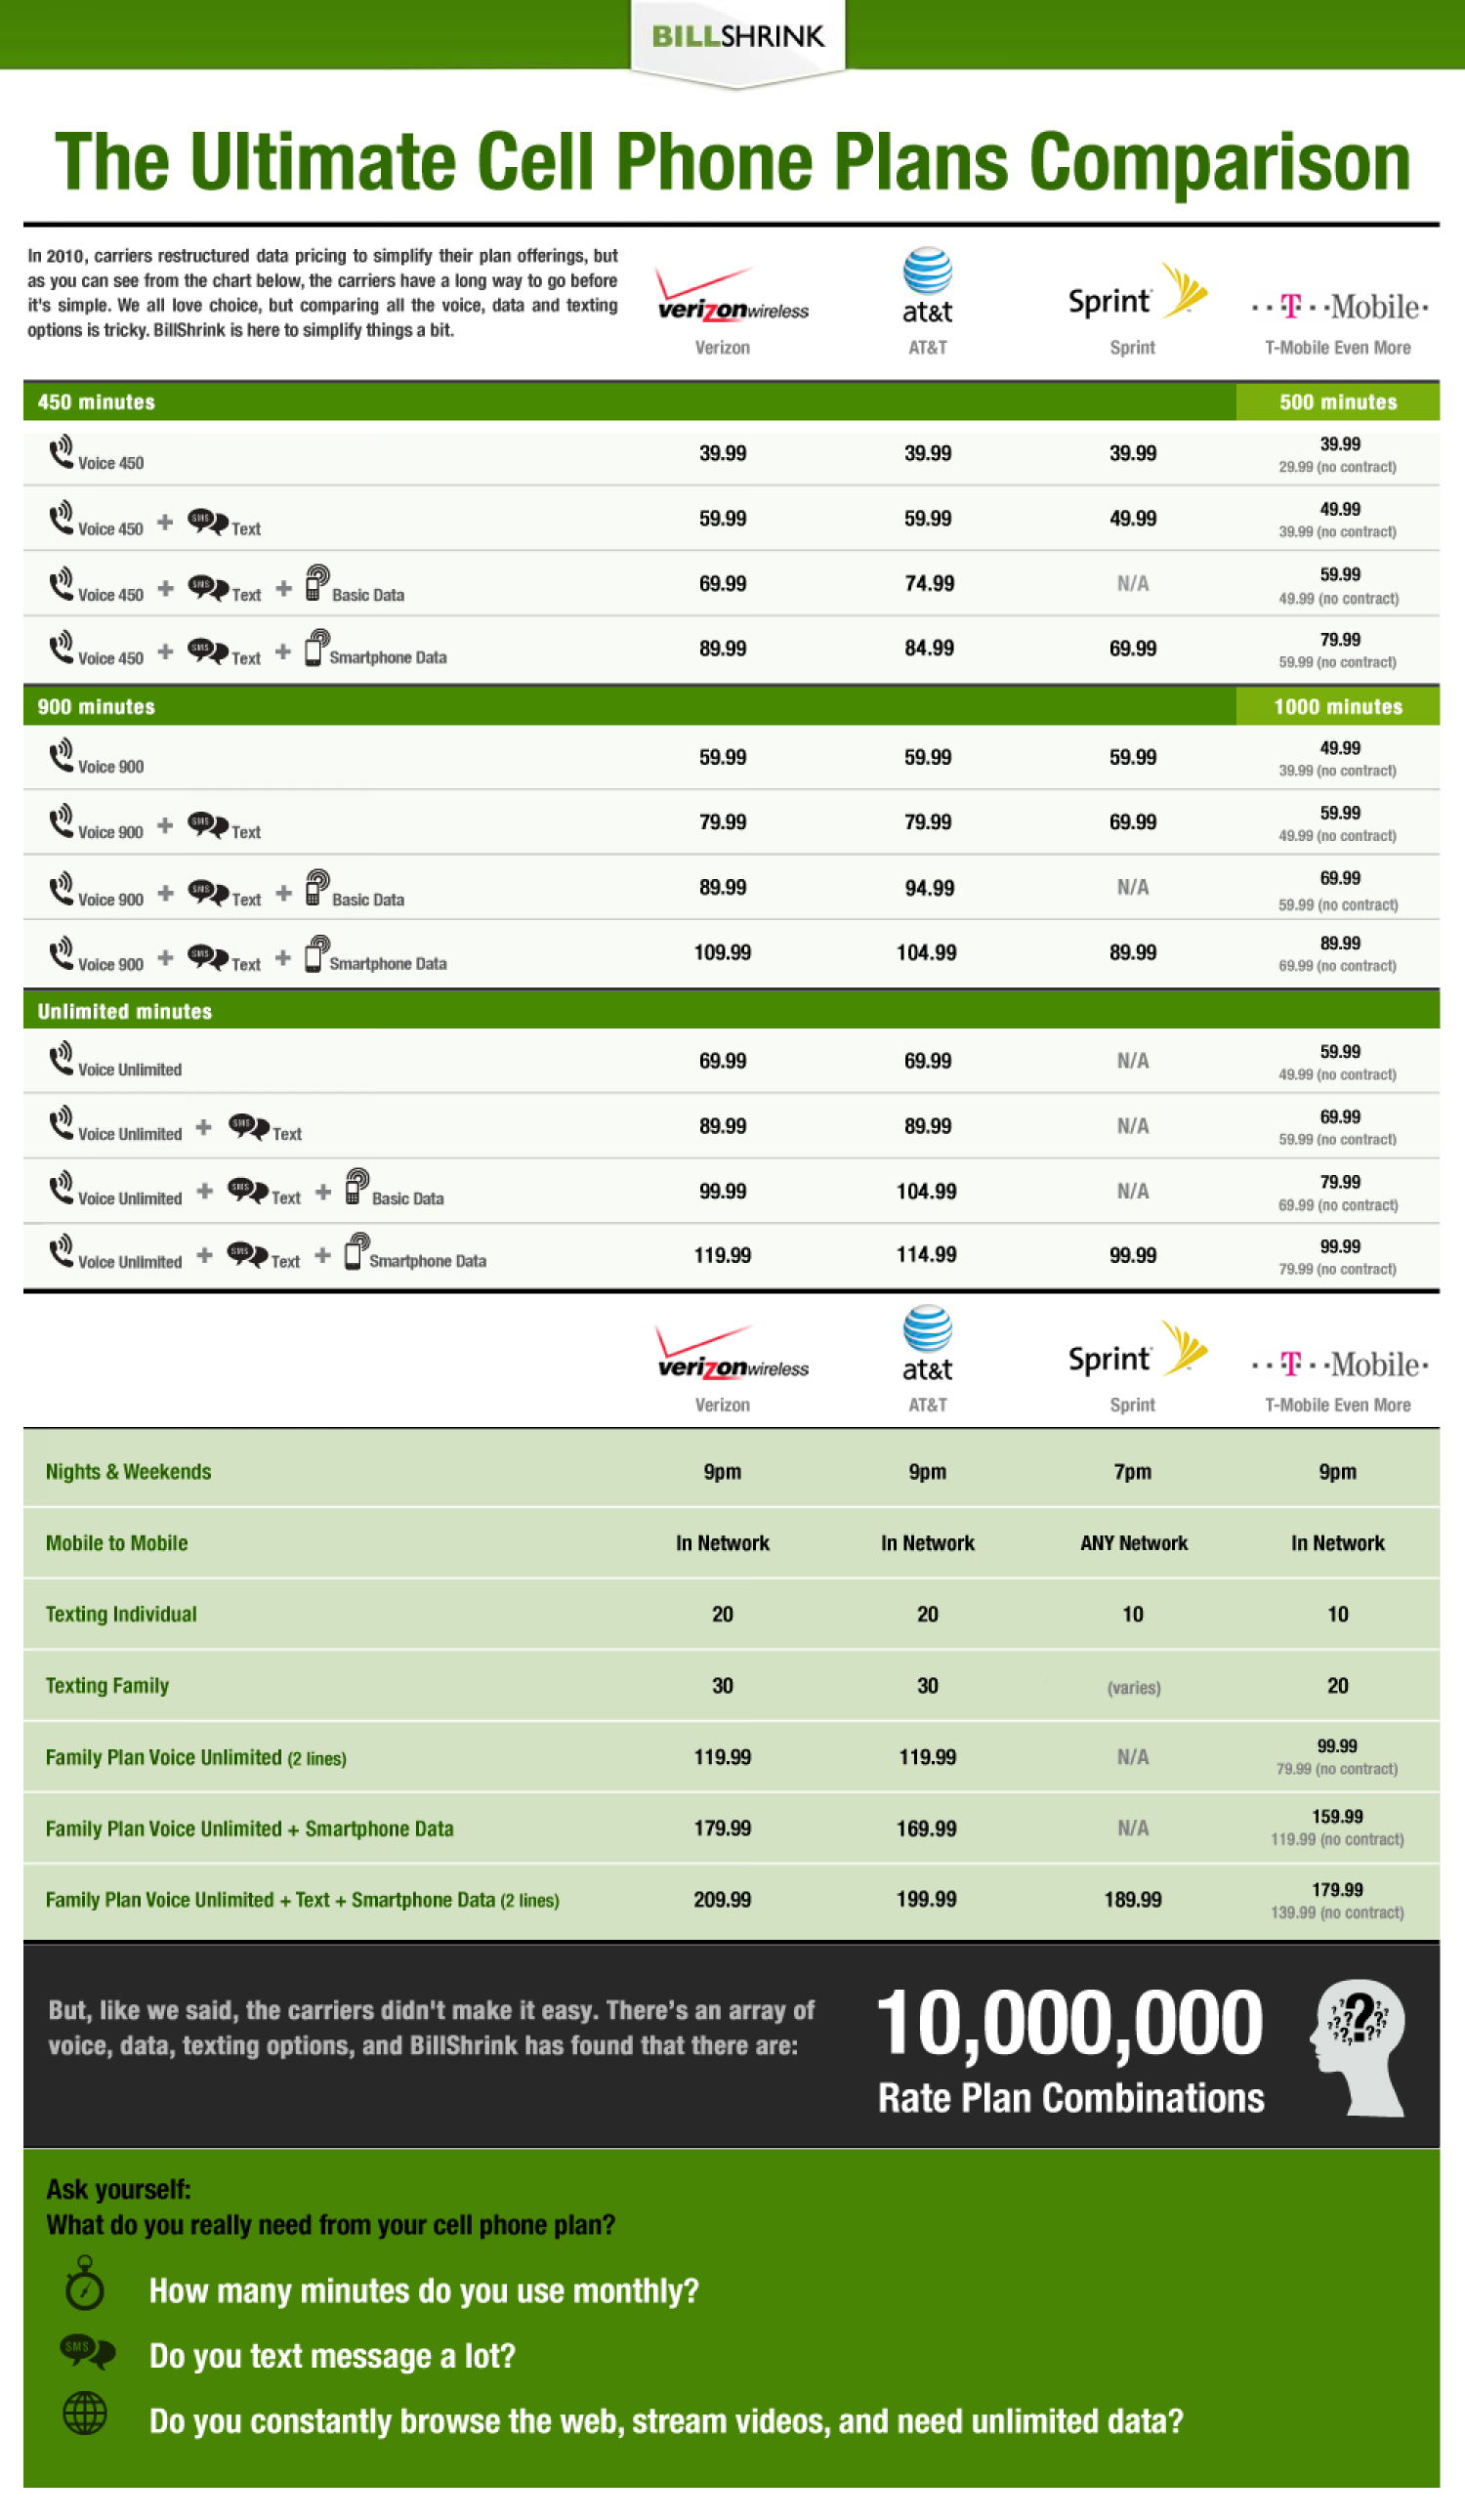 The Ultimate Cell Phone Plans Comparison Infographic